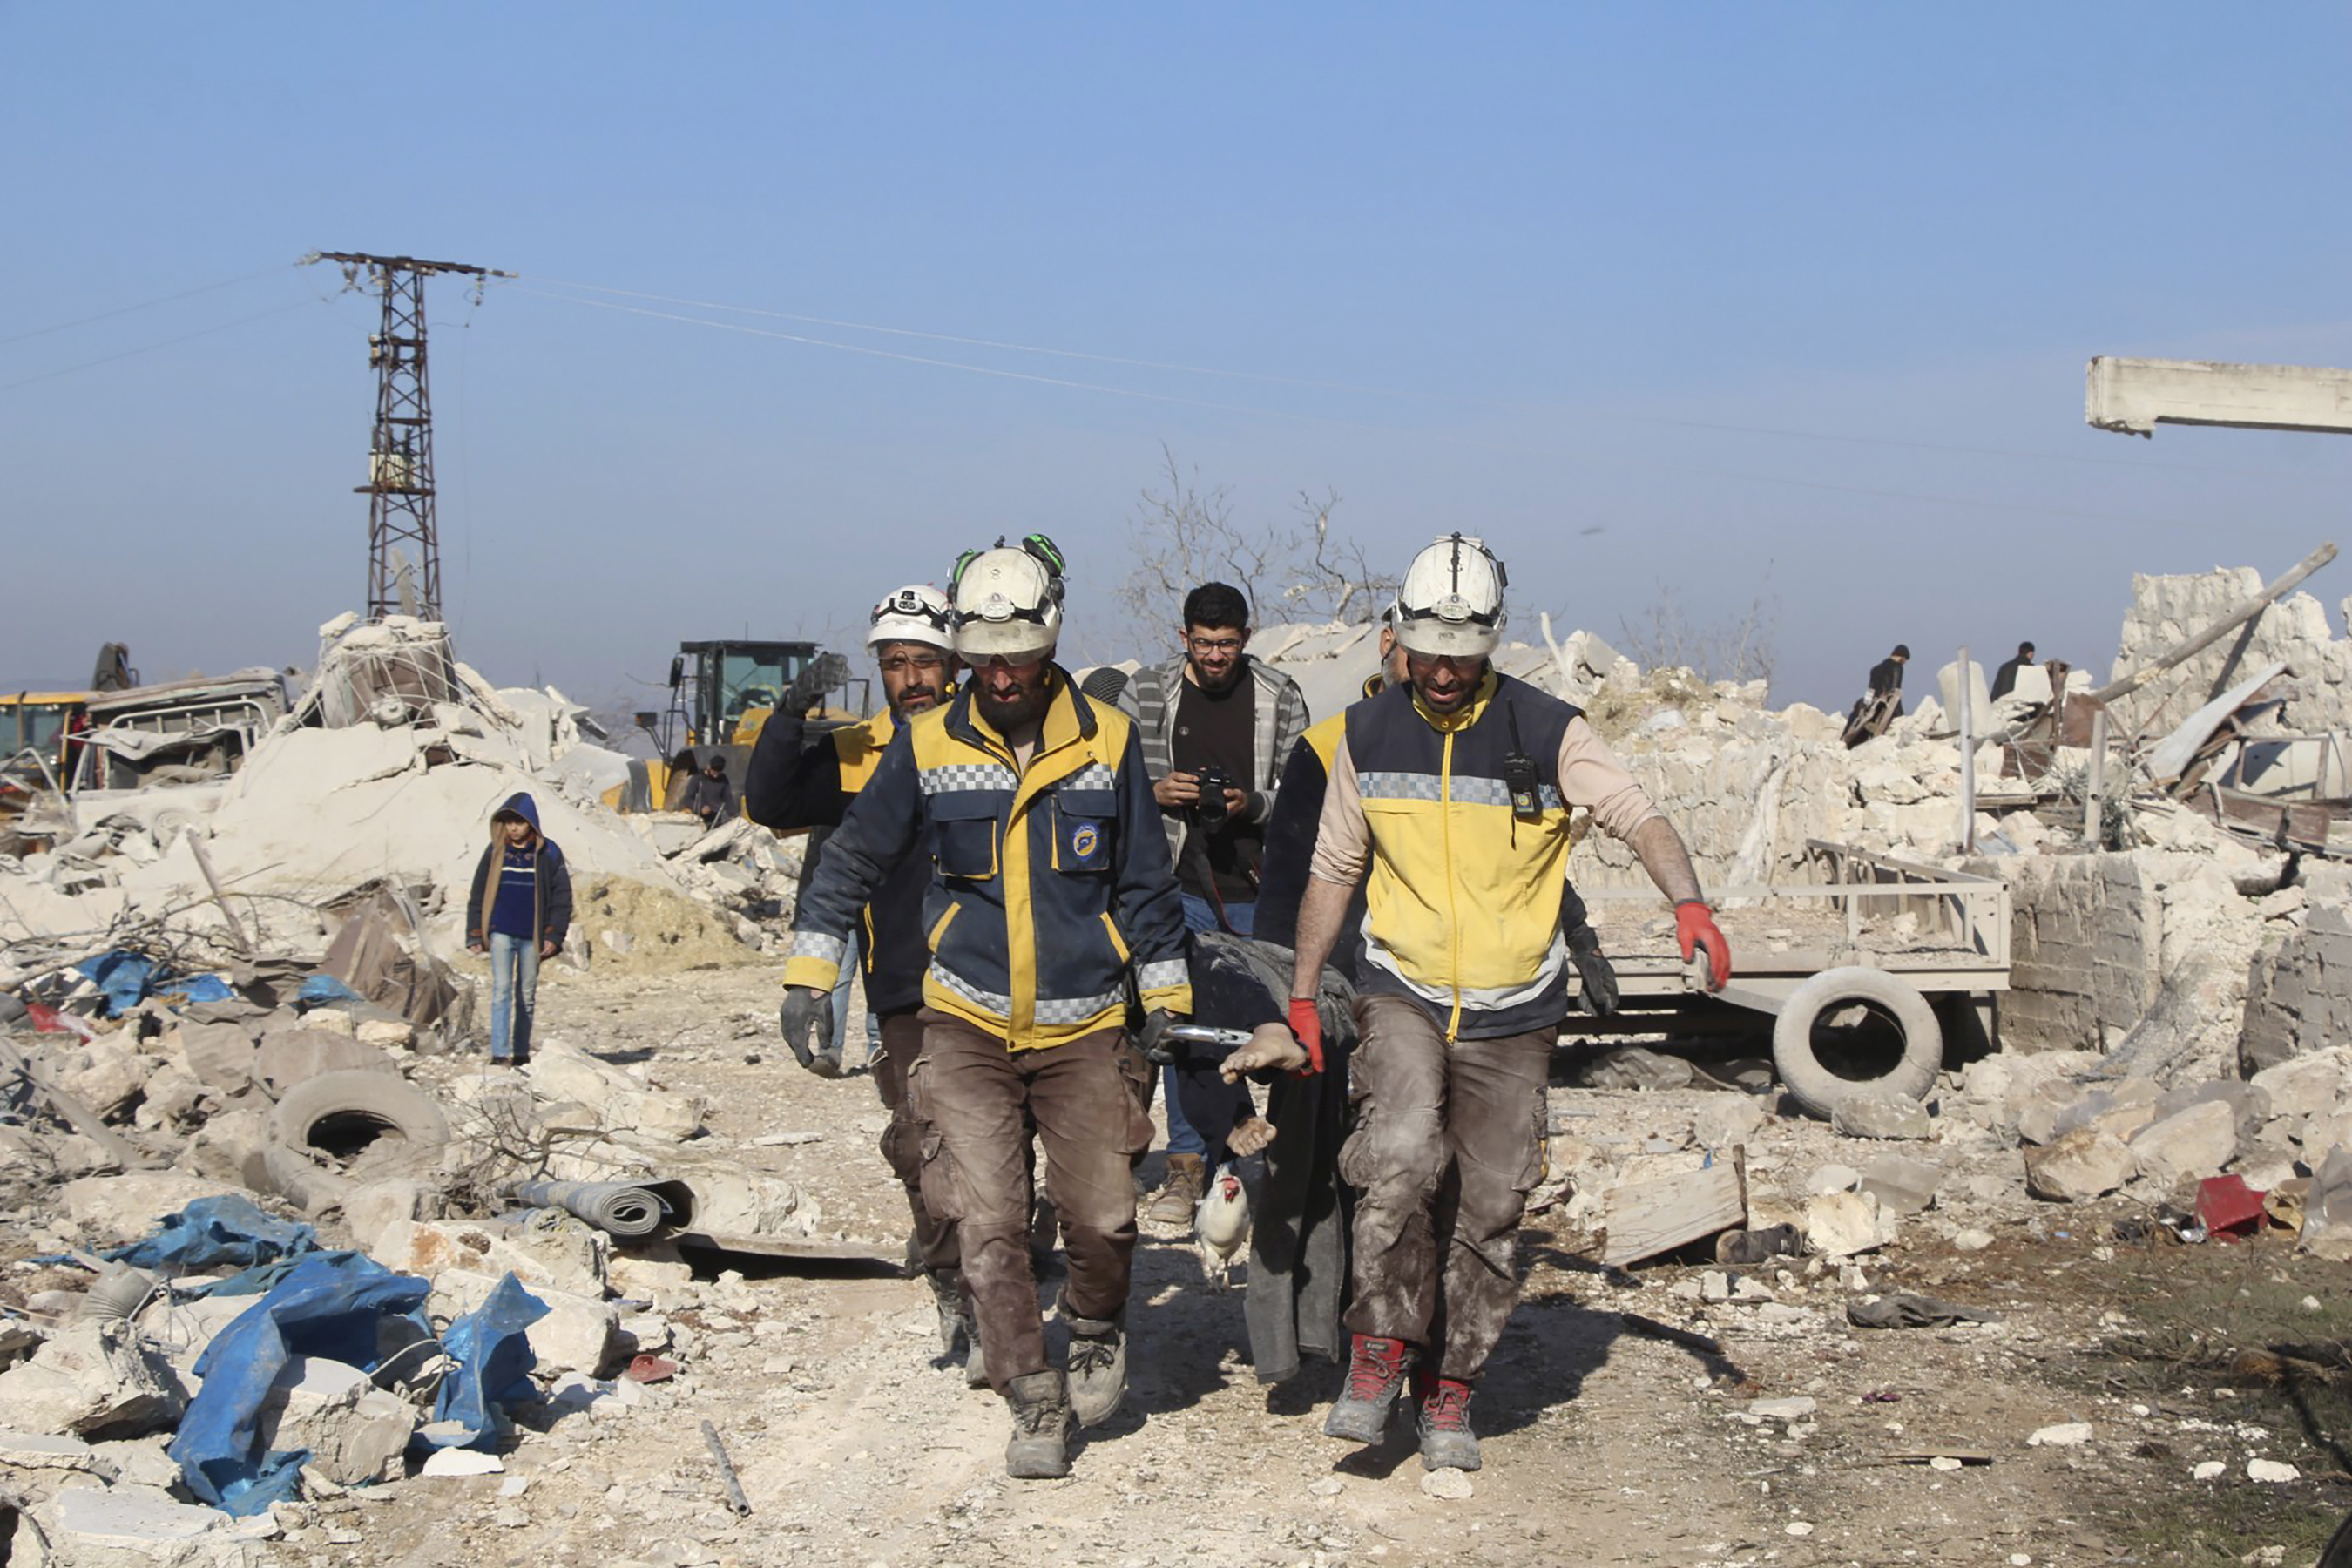 Civil defense workers carry a victim next to houses destroyed by airstrikes, in Maaret Musreen village, Idlib province, Syria, on March 5, 2020.